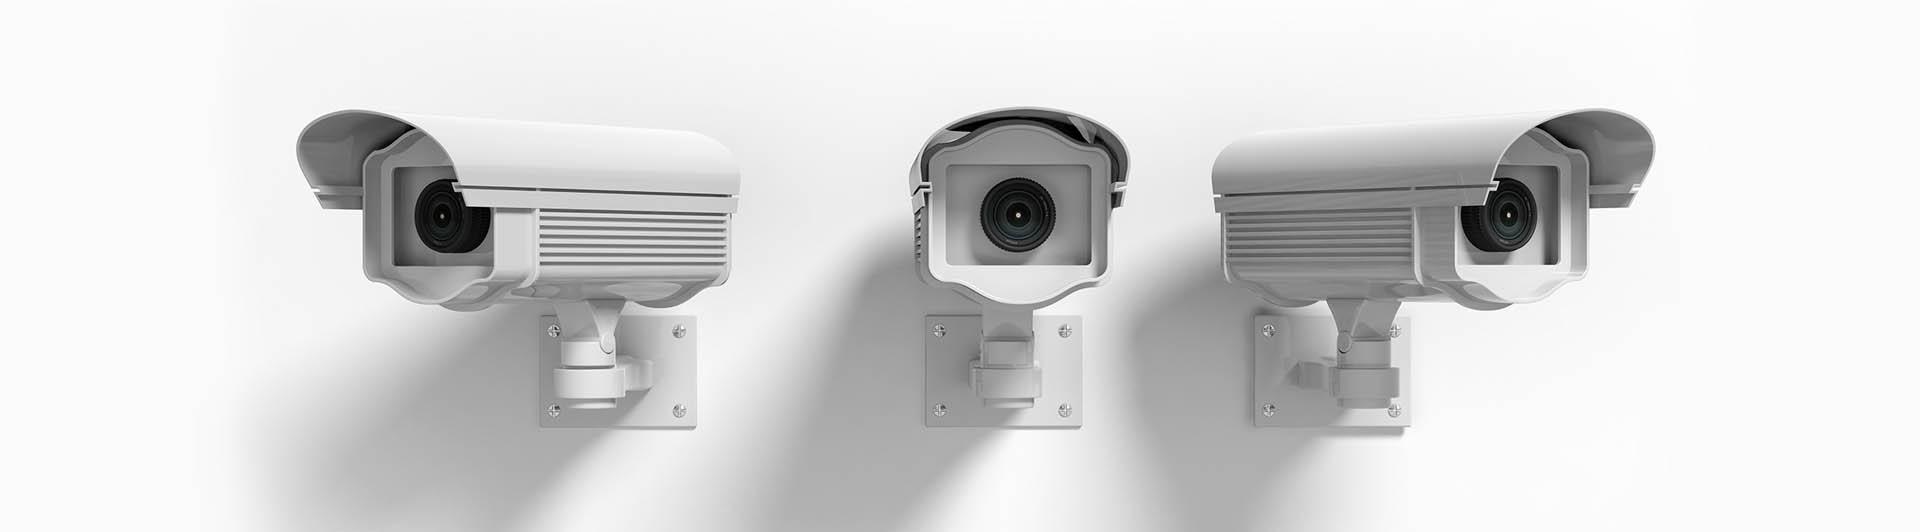 Three security surveillance cameras